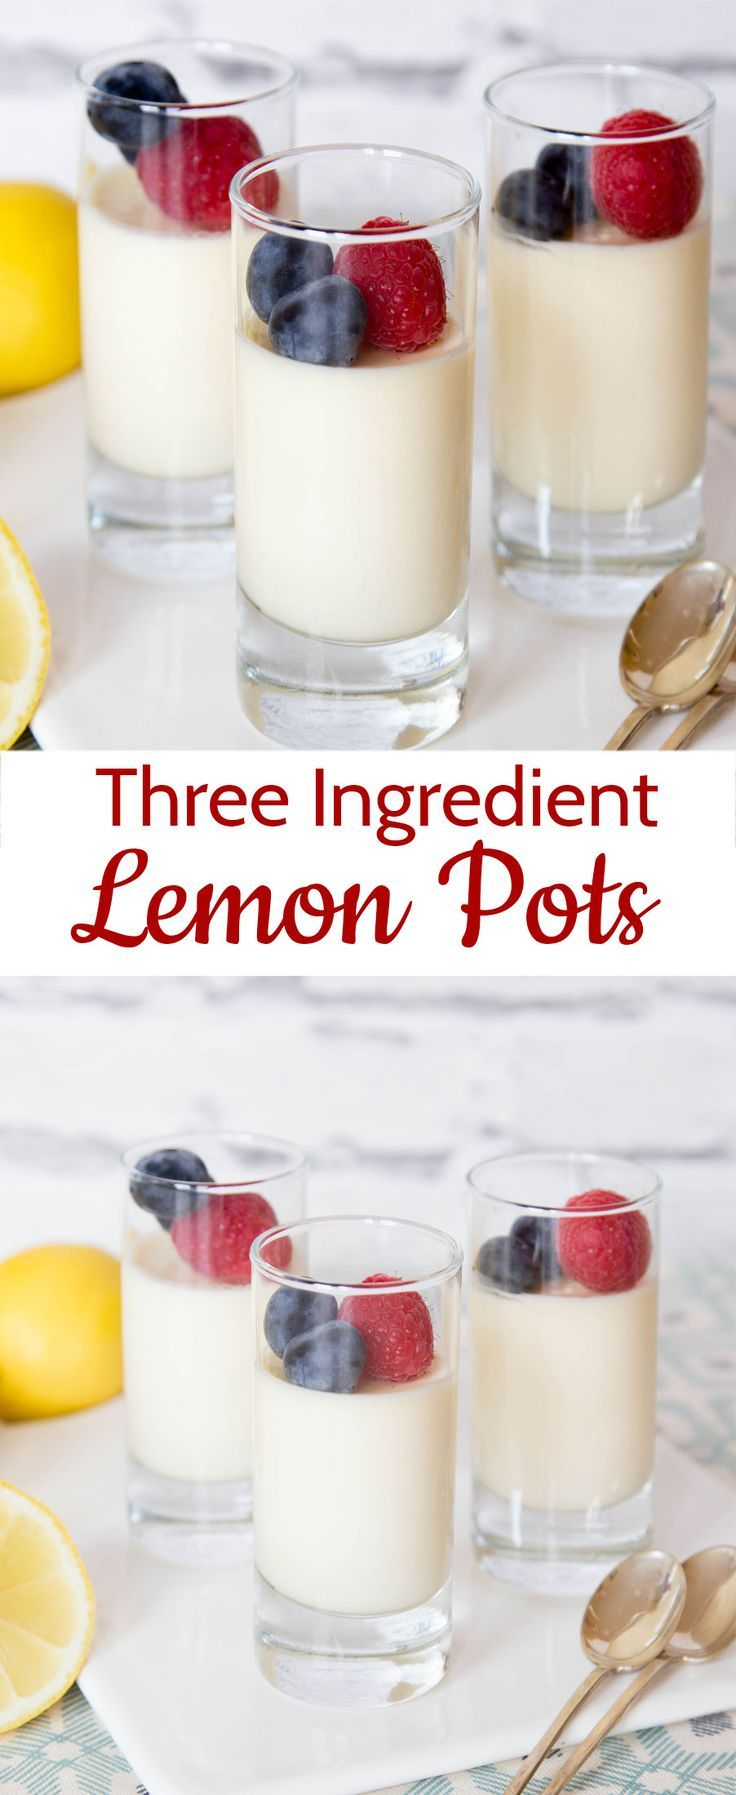 Lemon Posset Recipe (3 ingredient lemon pots) Lemon possets are rich & delicious, quick & easy, freeze well and only use 3 ingredients!